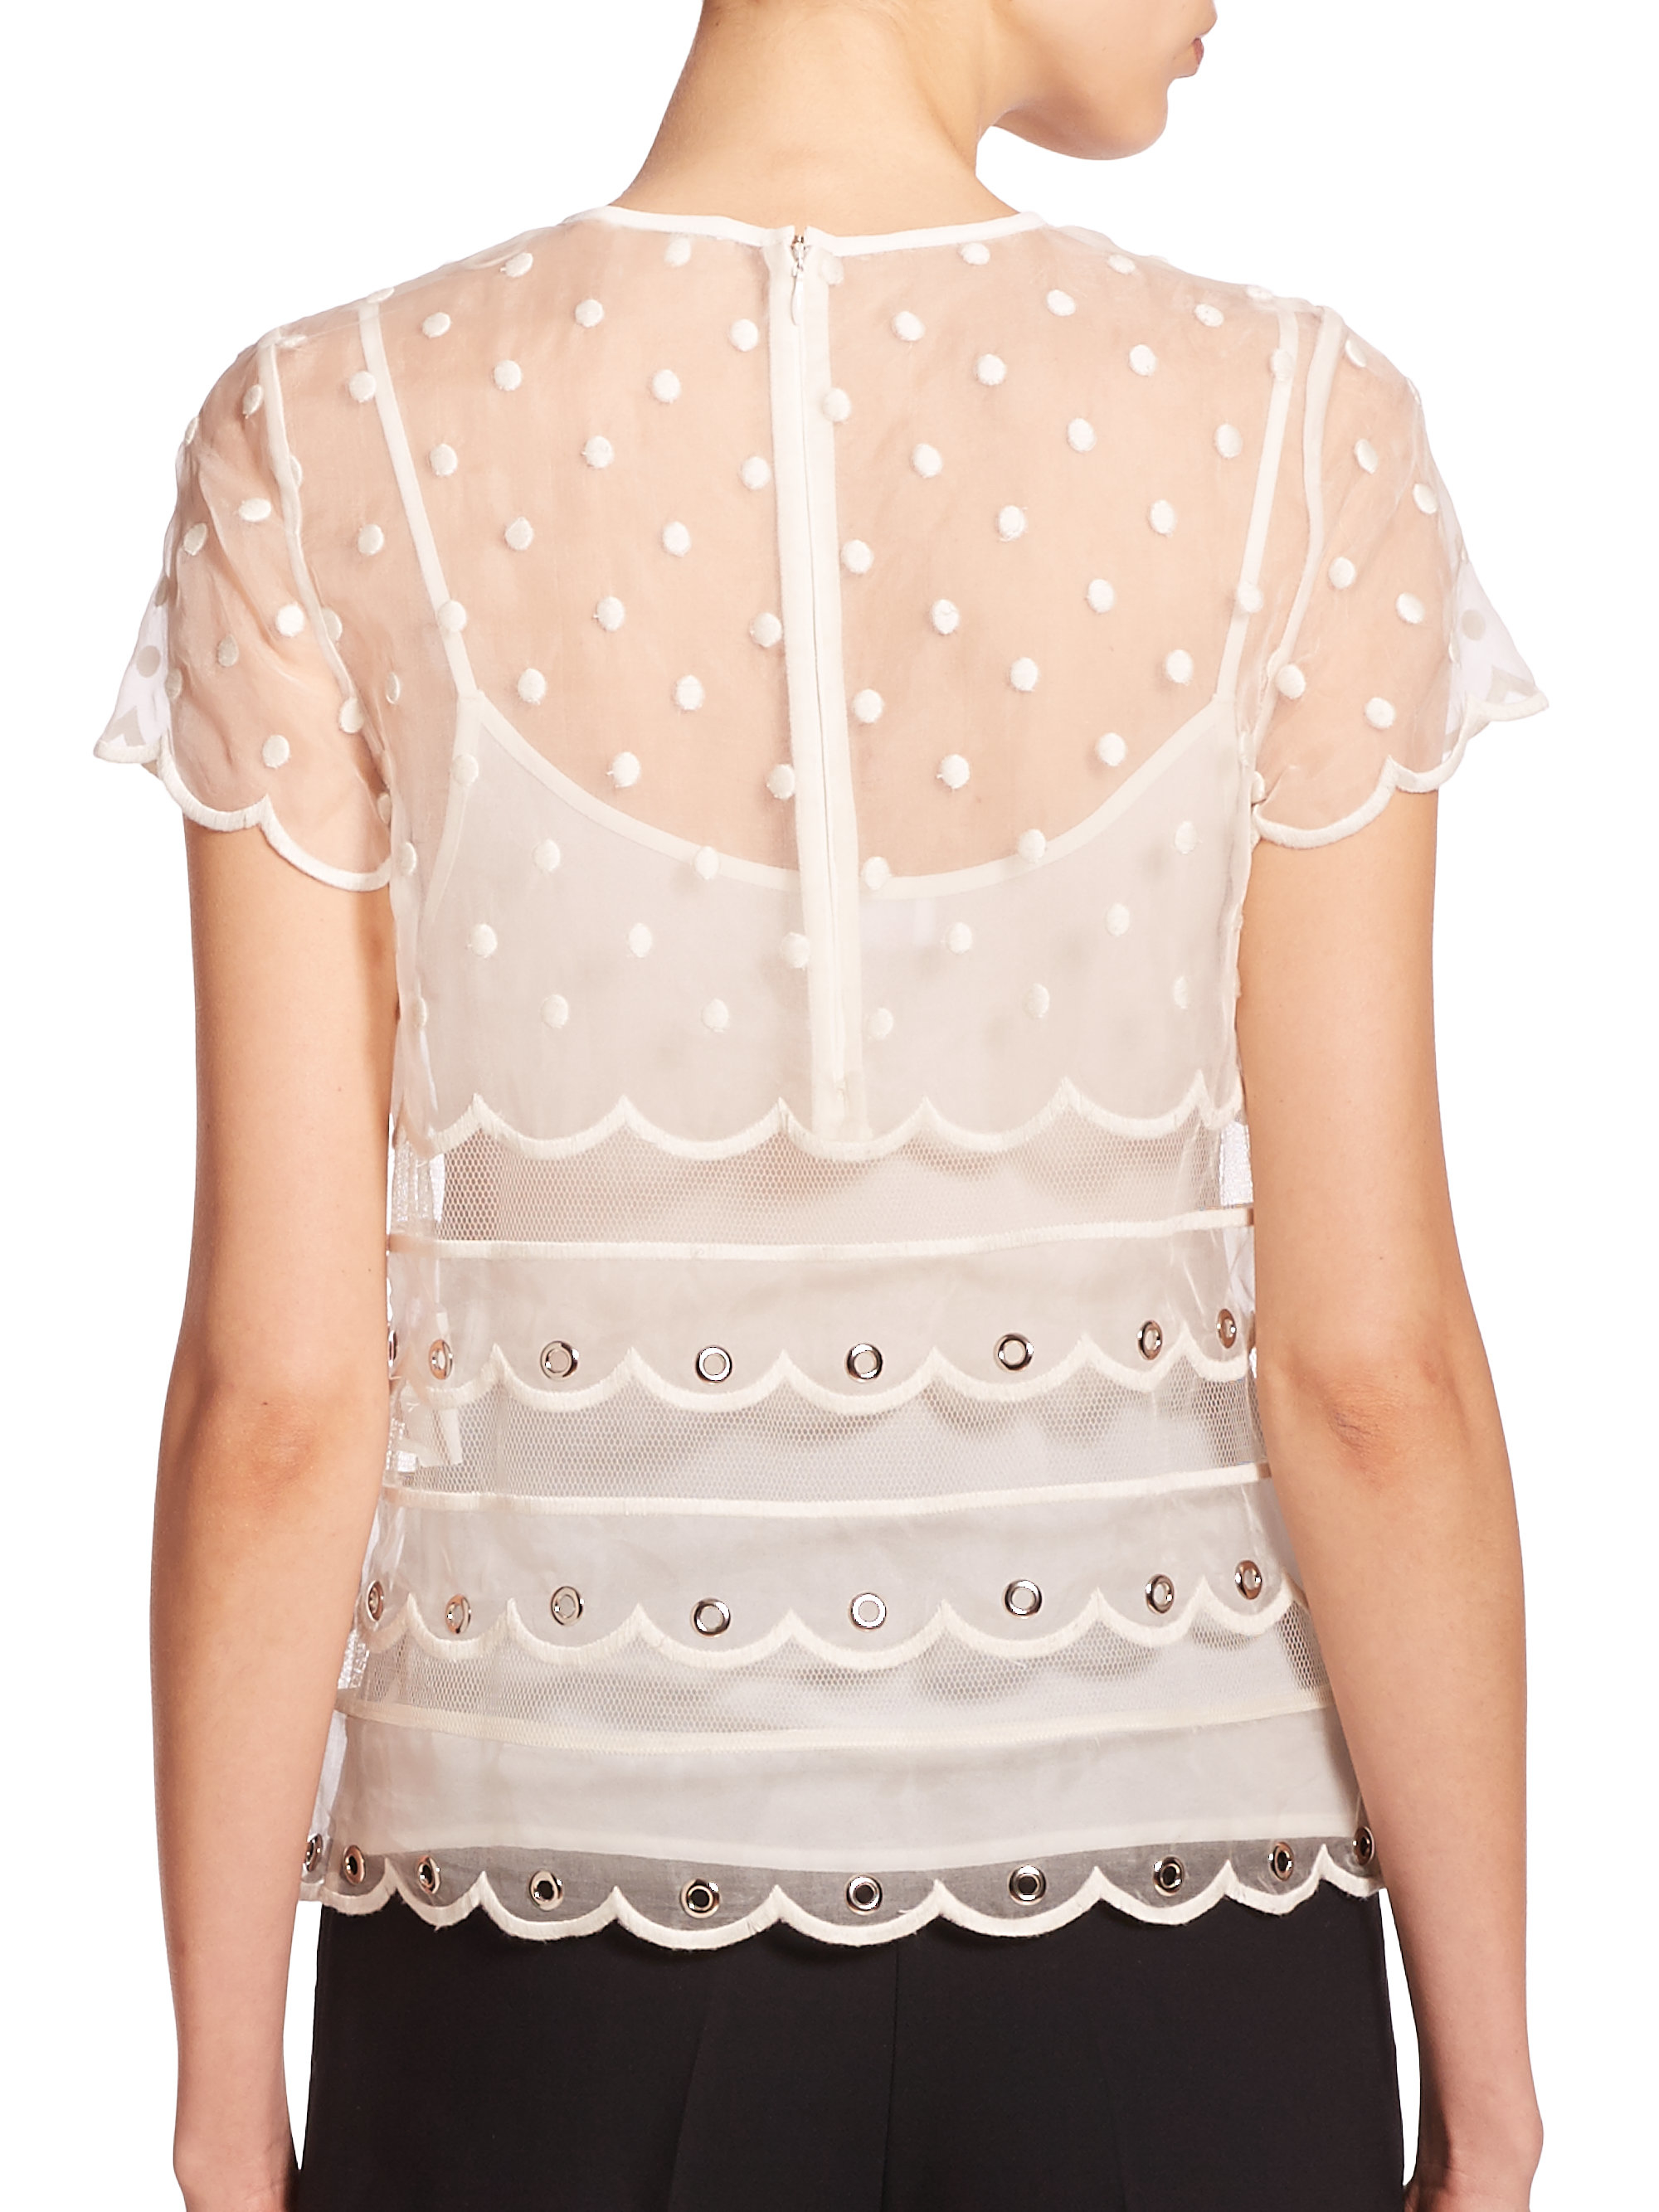 Organza blouse Red Valentino Free Shipping With Credit Card Buy Cheap Huge Surprise Discount Low Shipping Fee aI94k